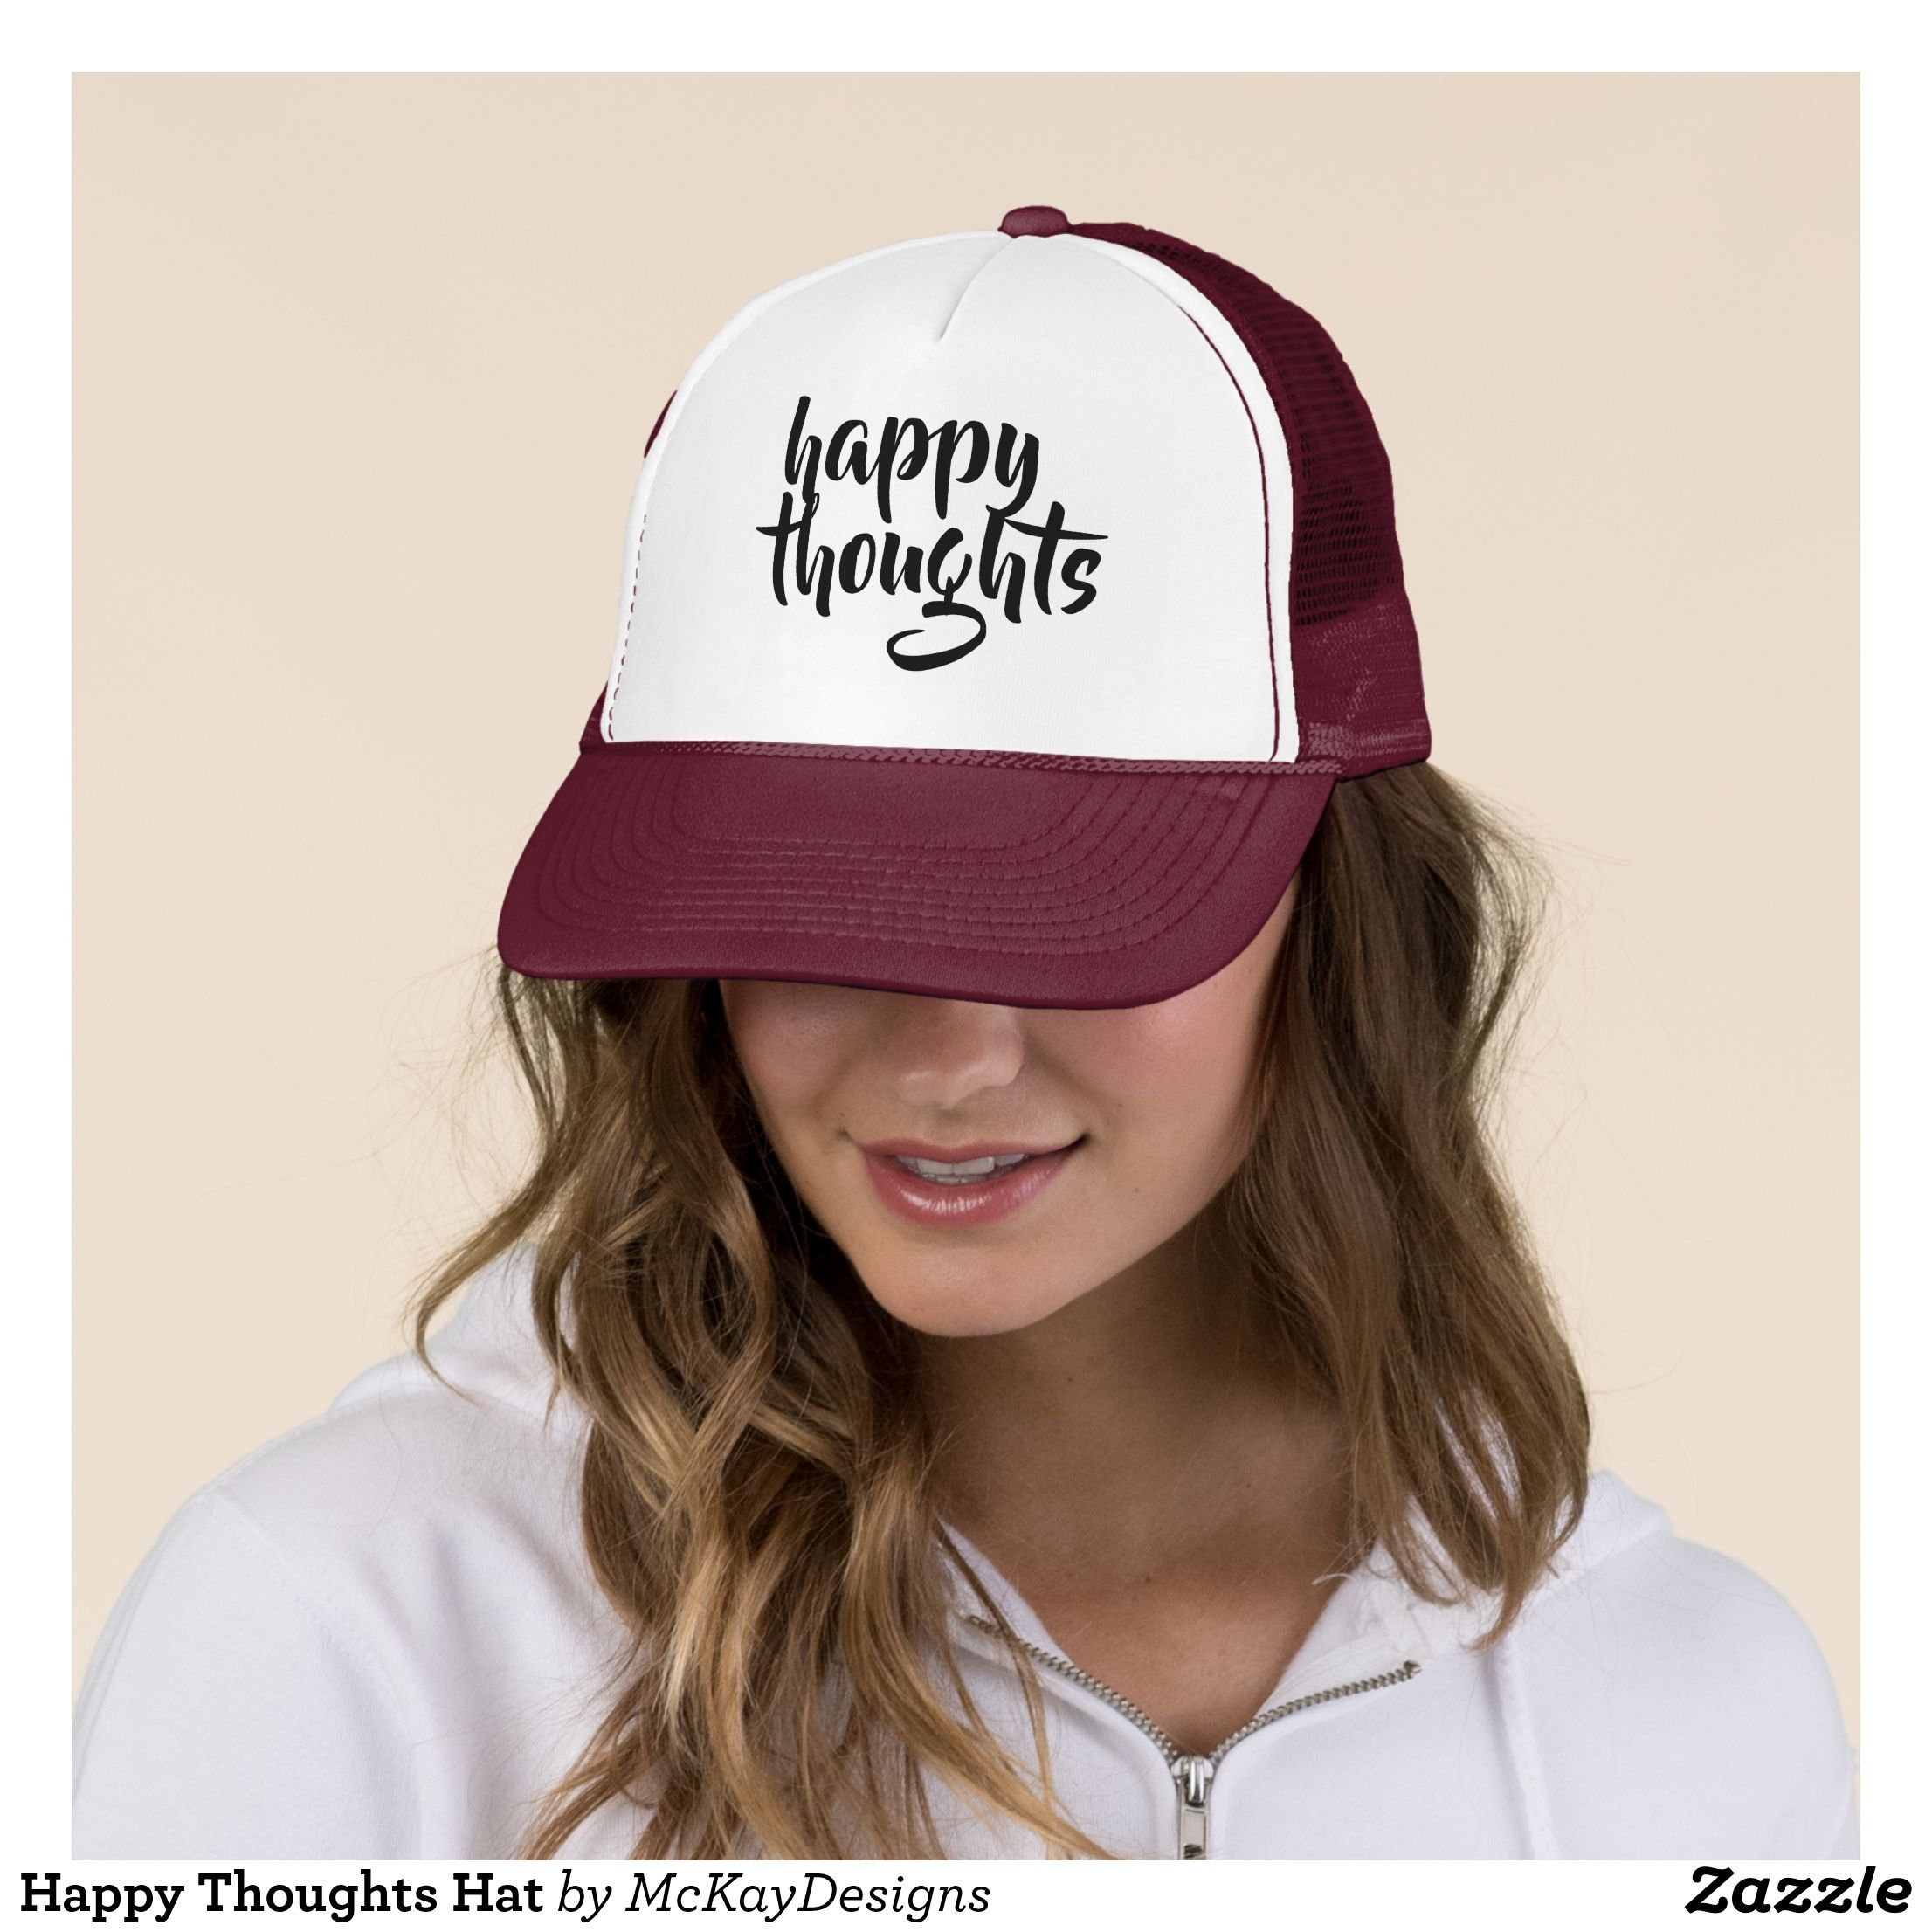 f85b9026e58d6 Happy Thoughts Hat - Urban Hunter Fisher Farmer Redneck Hats By Talented  Fashion And Graphic Designers -  hats  truckerhat  mensfashion  apparel   shopping ...